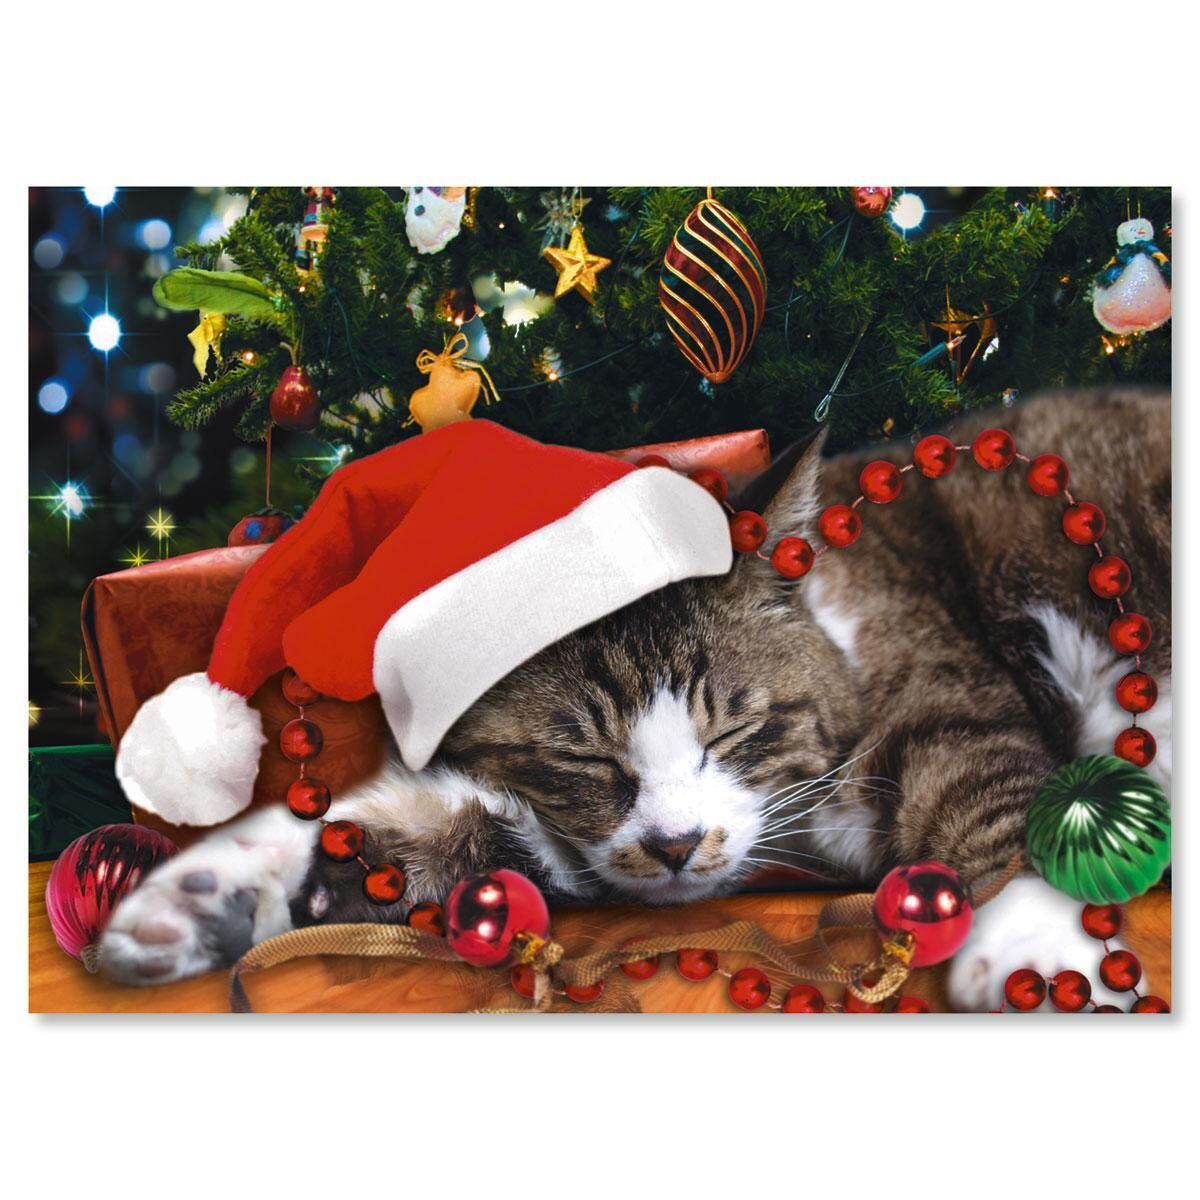 Picture This™; Christmas Cat Nonpersonalized Christmas Cards - Set of 72